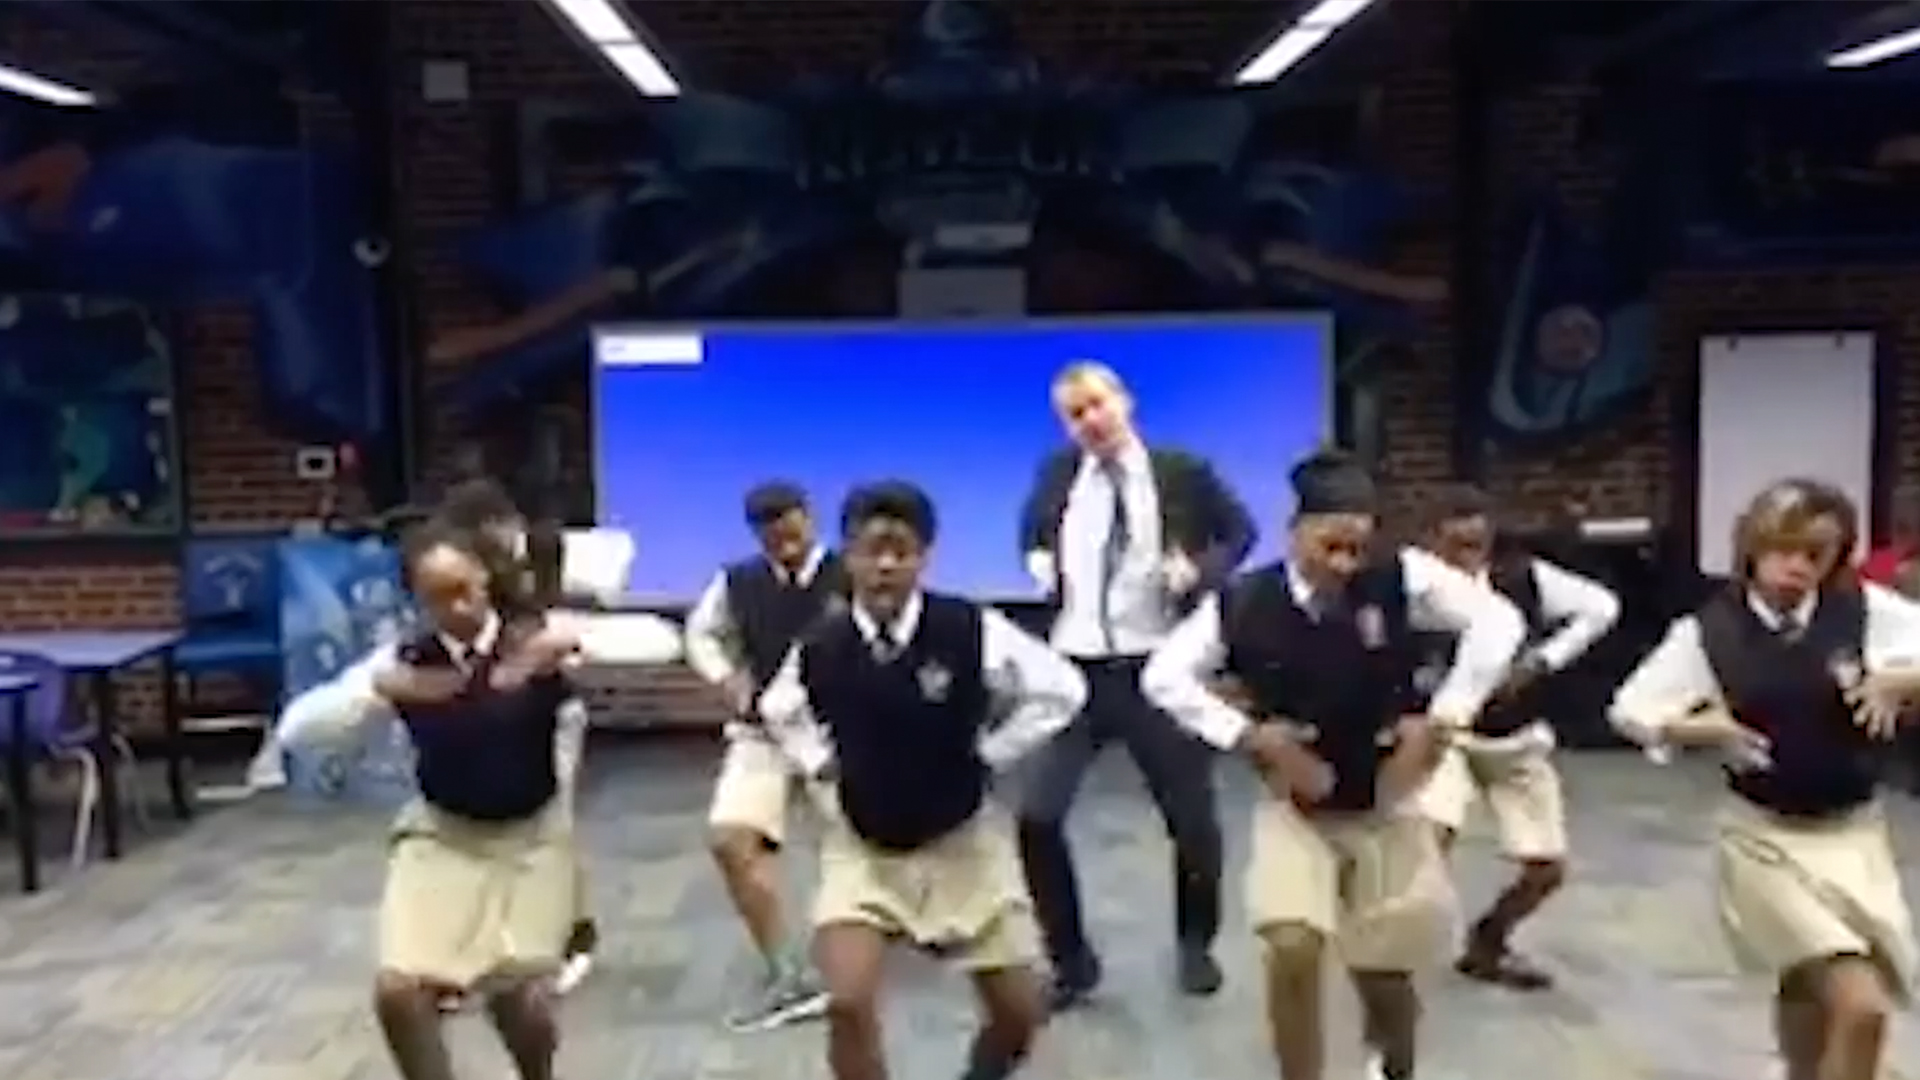 Ron Clark Dances with Students from Academy in Viral Clip